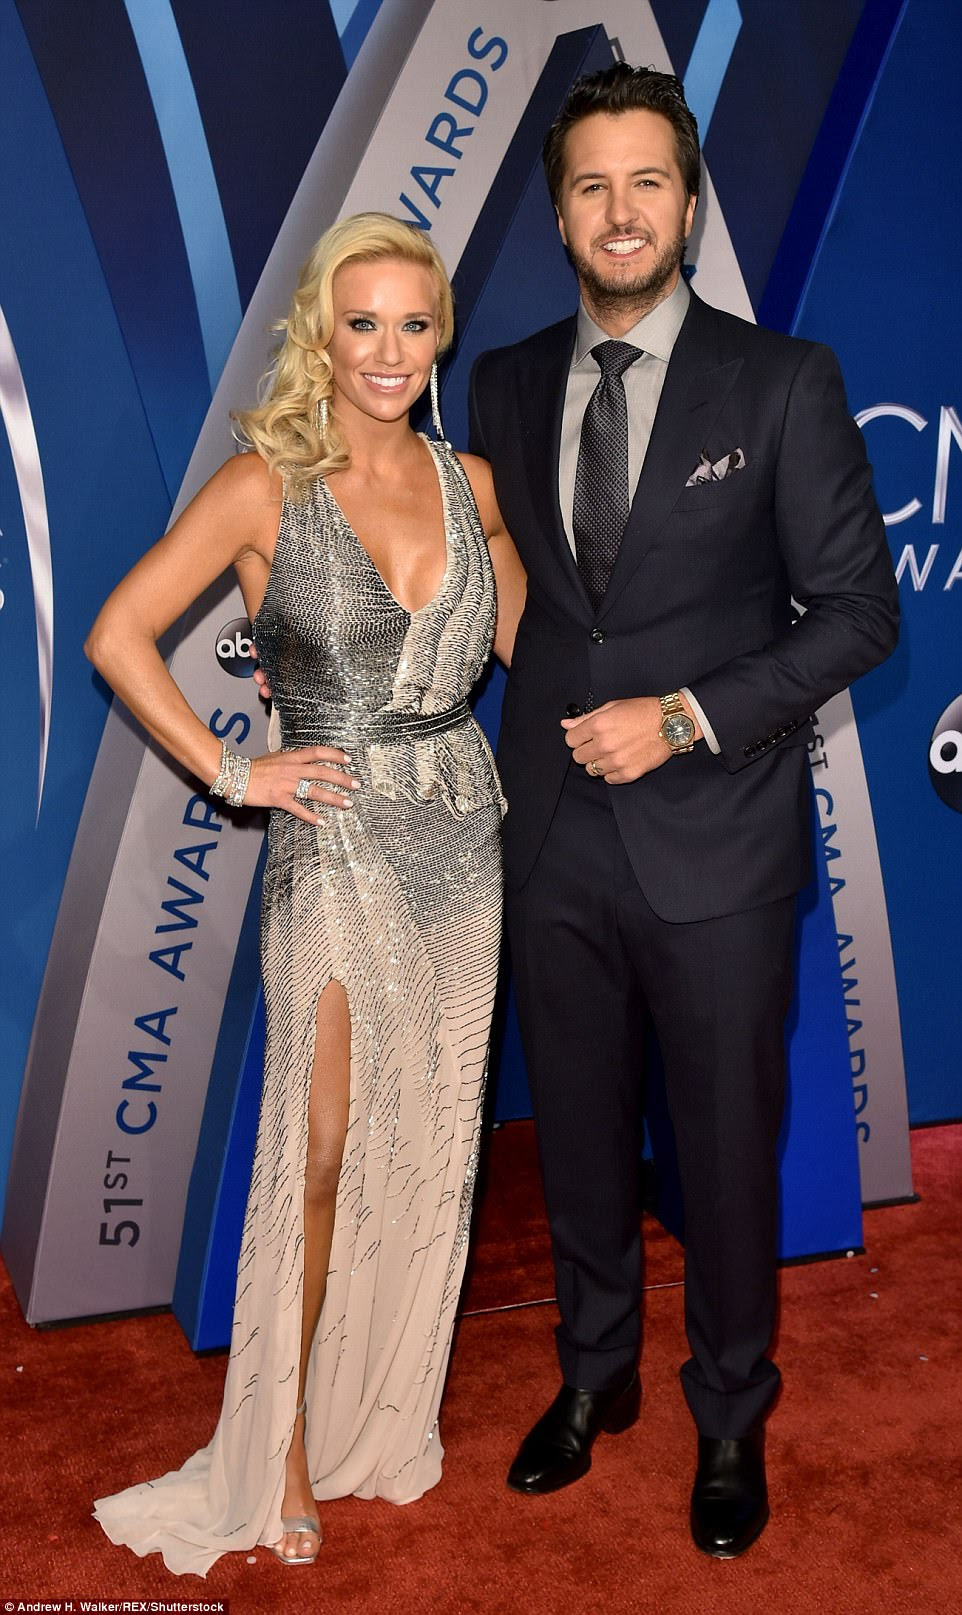 Hitting a fashion high note! Luke Bryan and his wife Caroline Boyer cut a stylish figure on the carpet